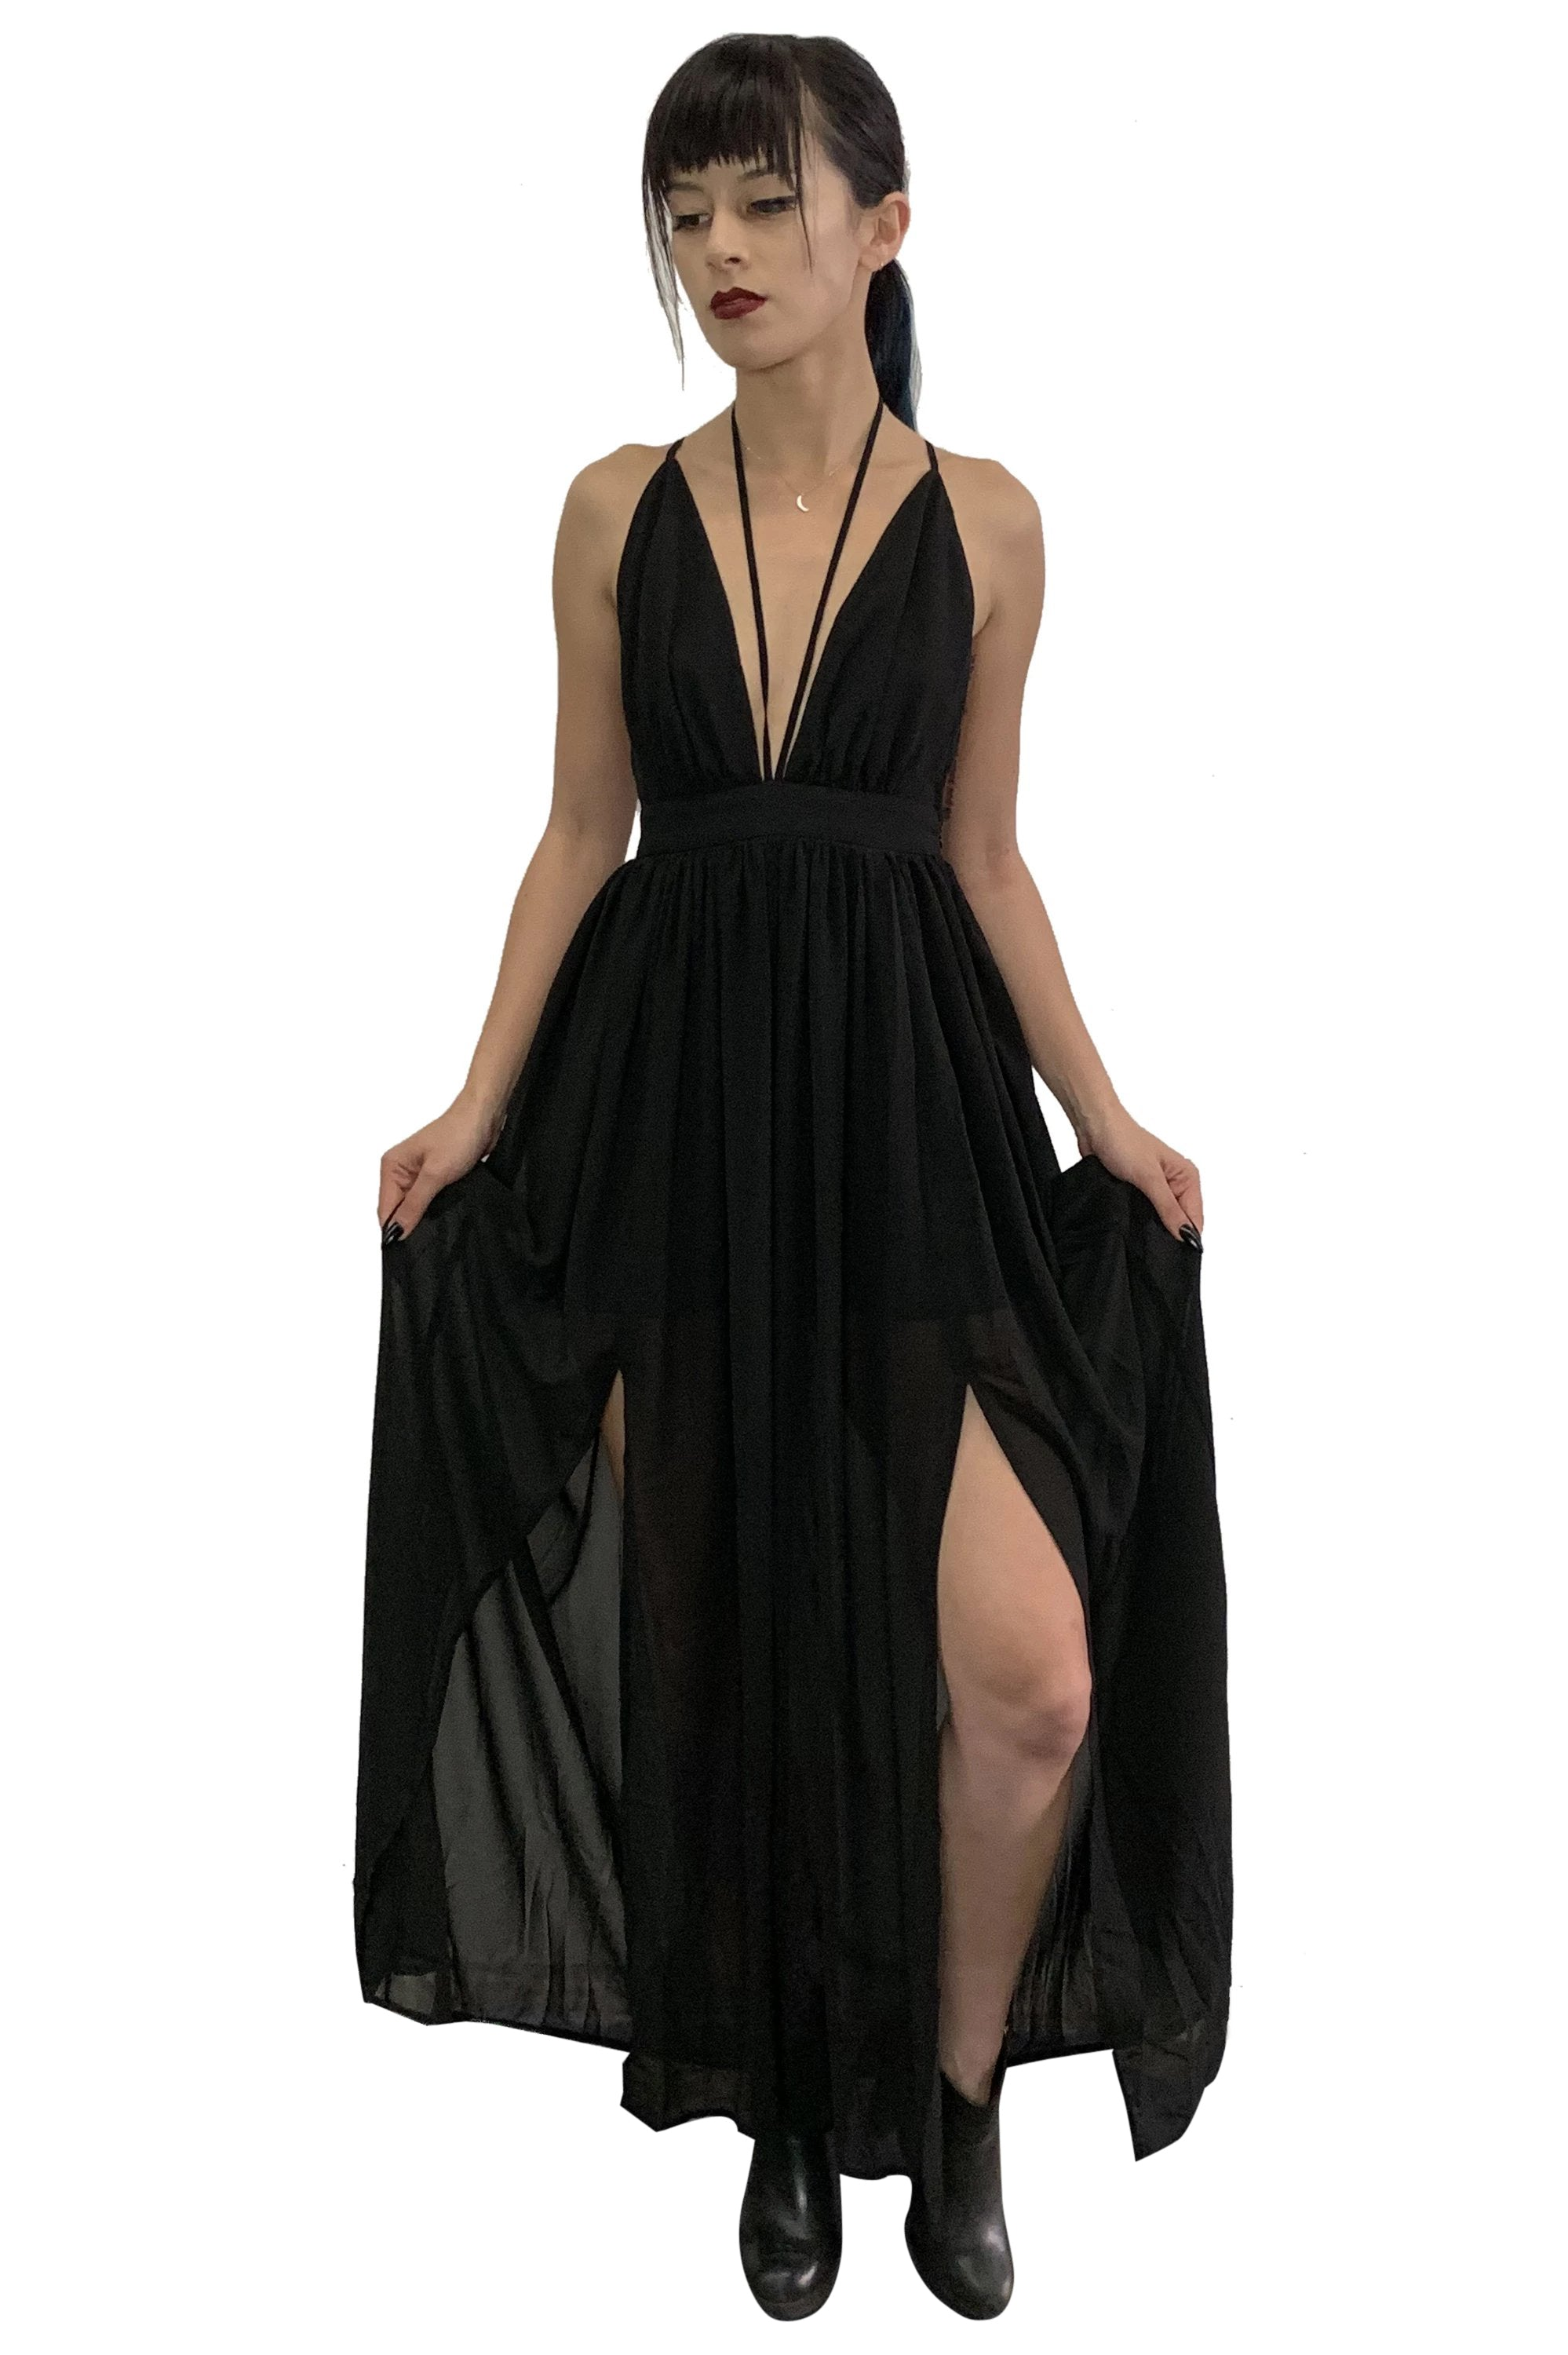 Calypso Flowing Maxi Dress - no restock. Limited edition.